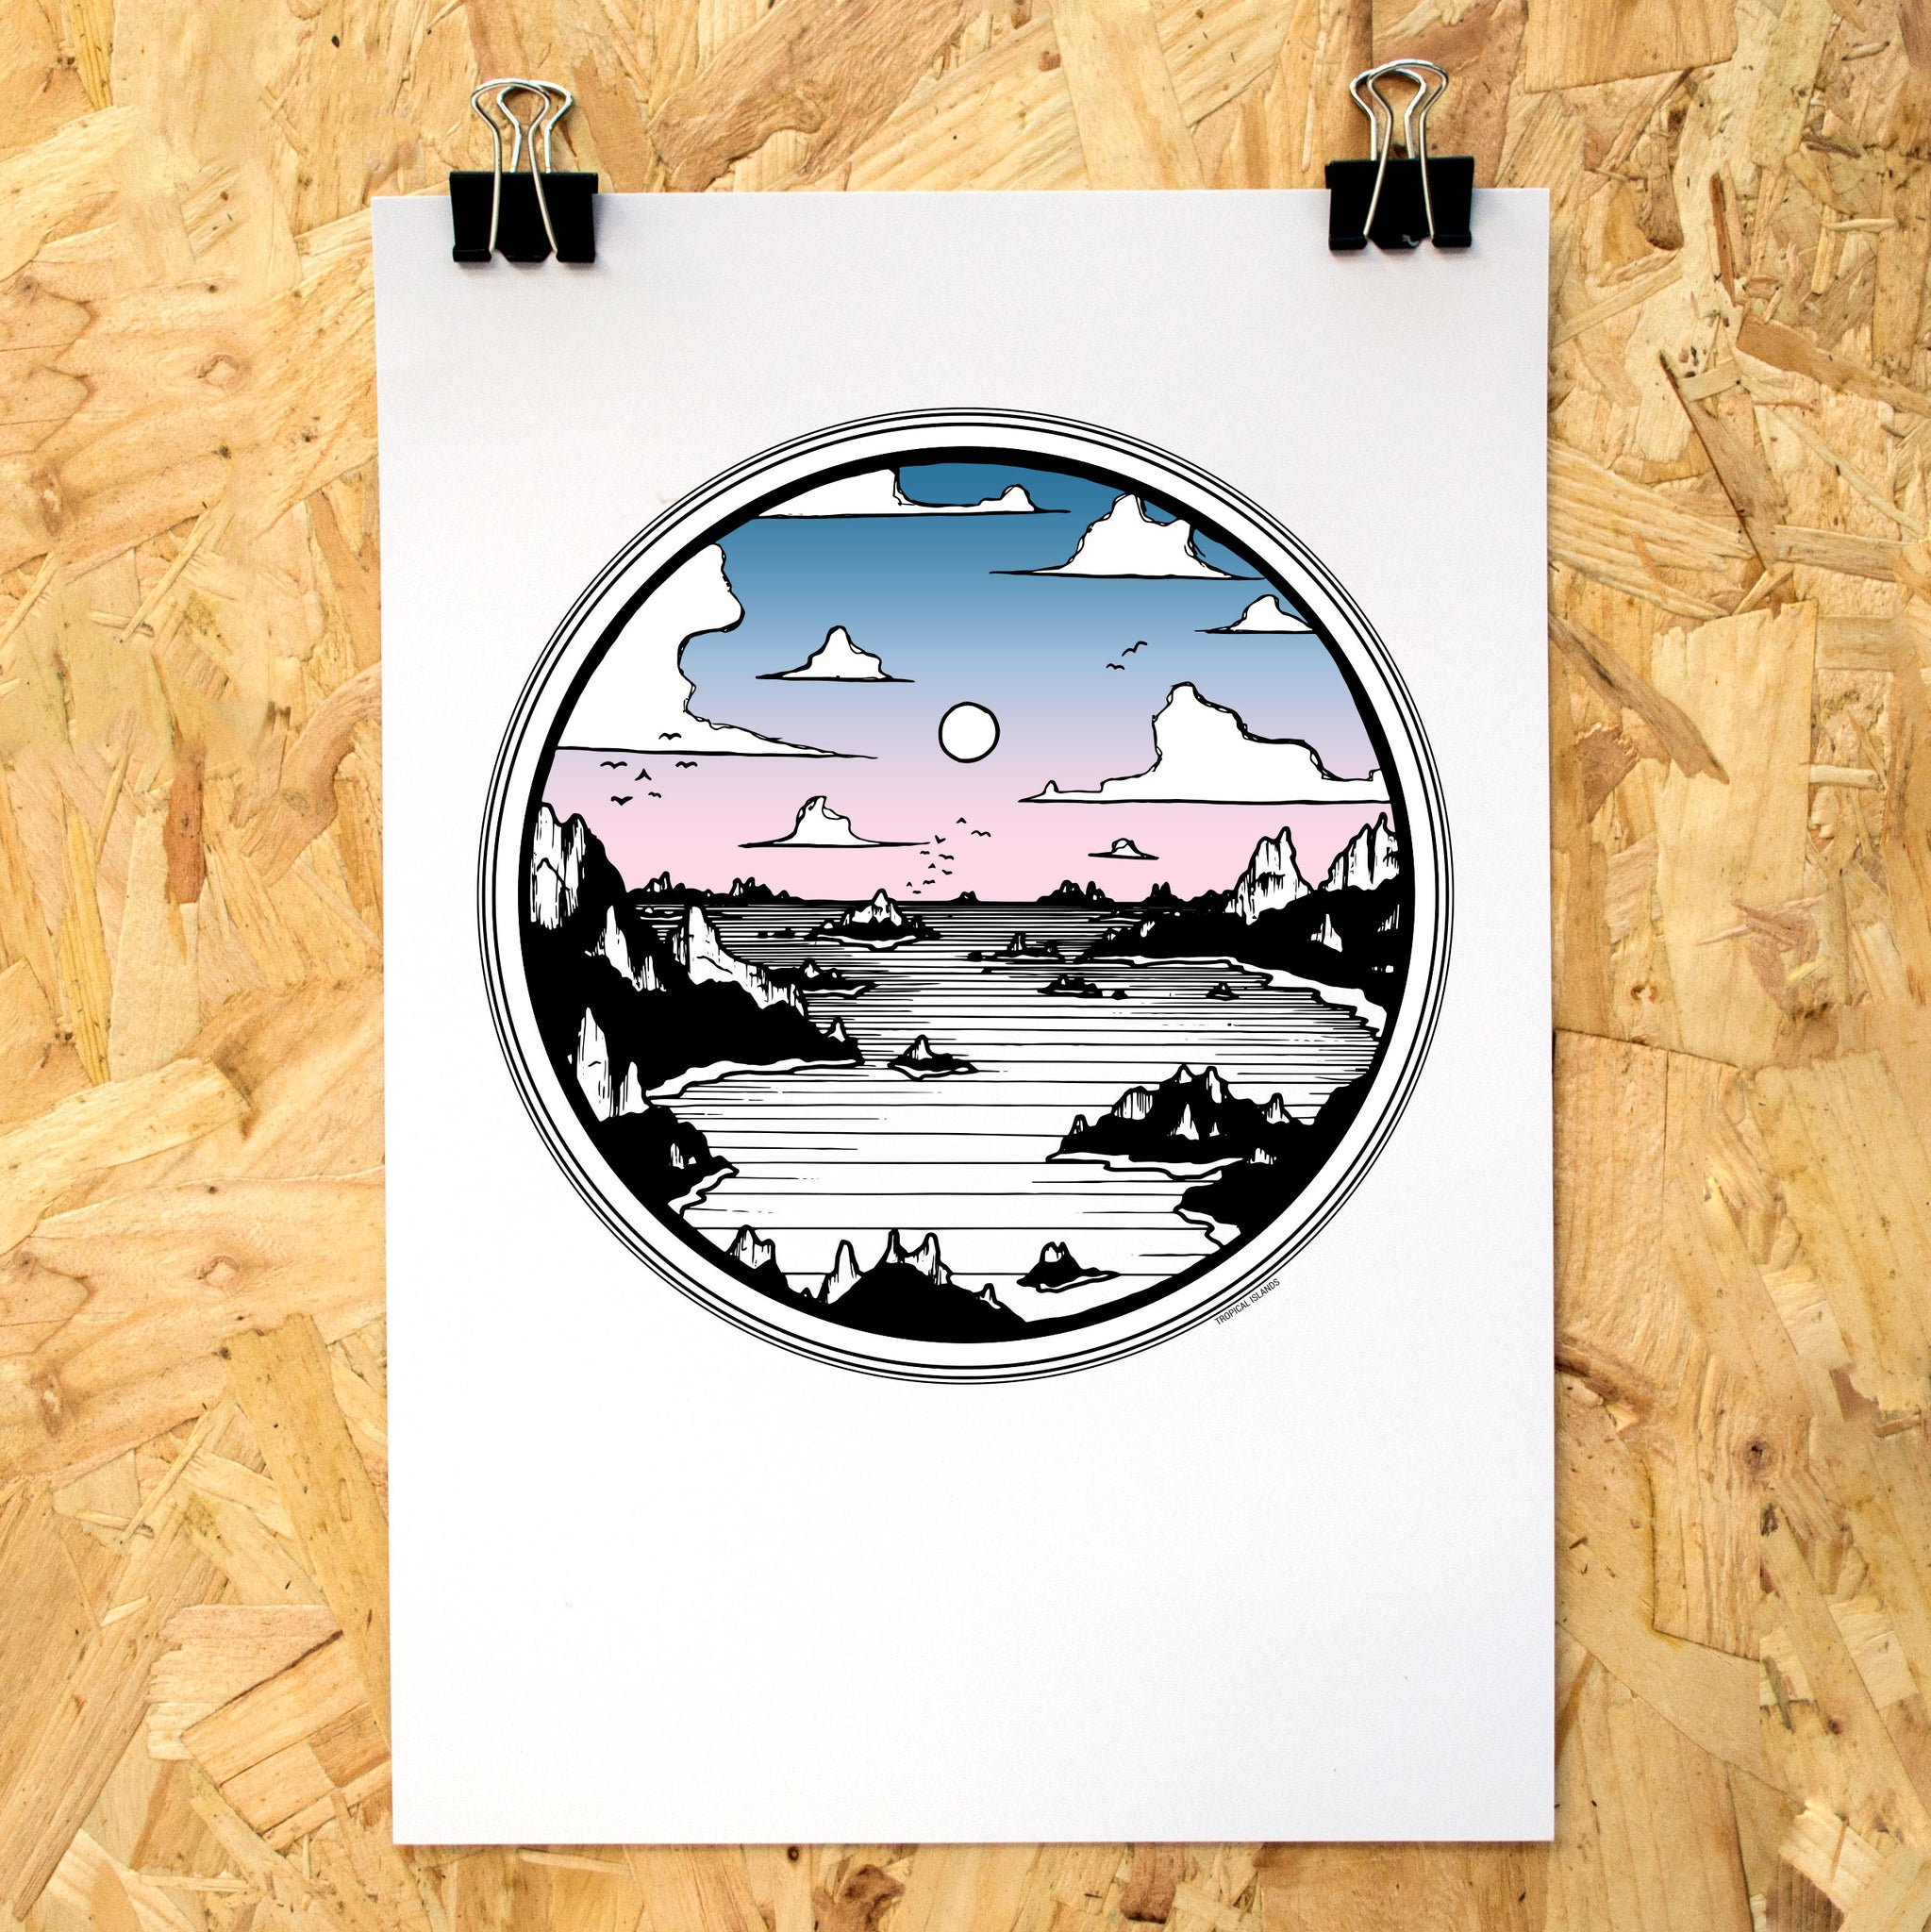 Tropical Islands Colour A4 Print - Adventure Series